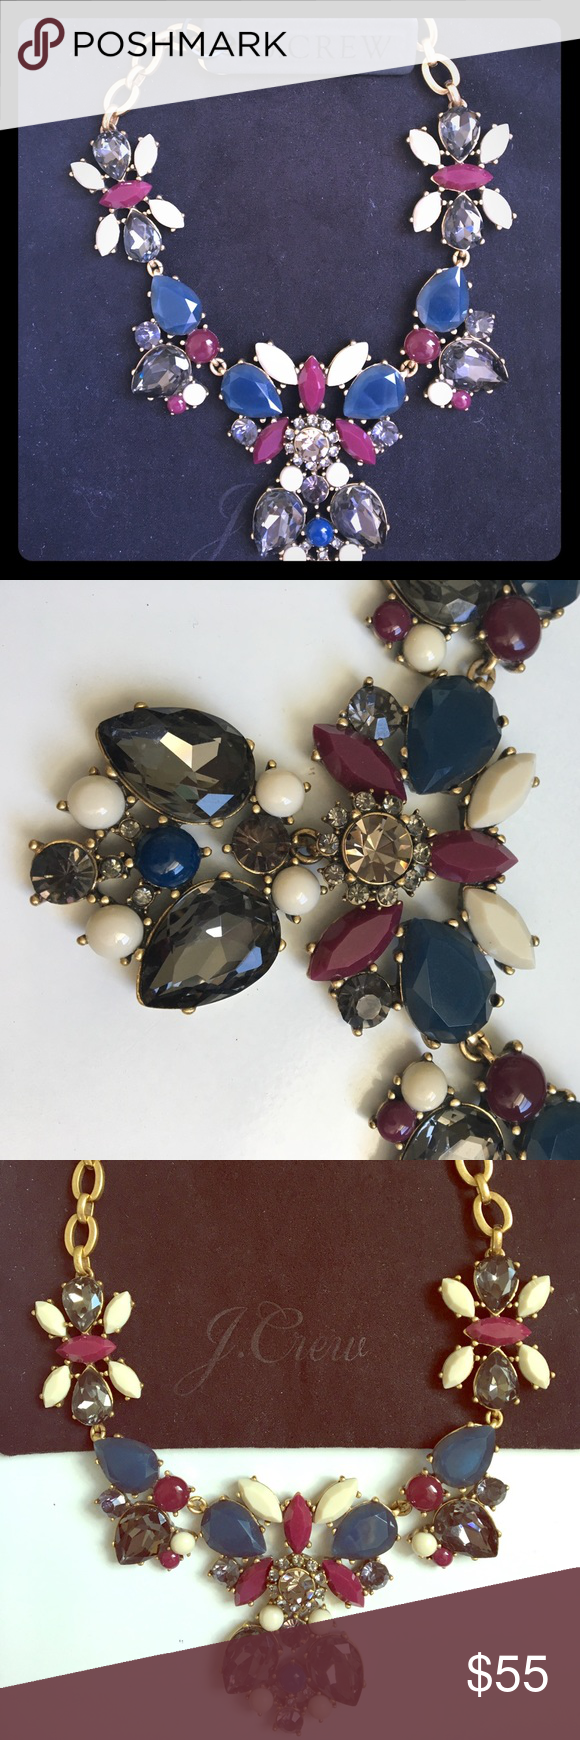 J. Crew Crystal necklace New. A dramatic Crystal Necklace. Just what your outfit needs. J. Crew Jewelry Necklaces